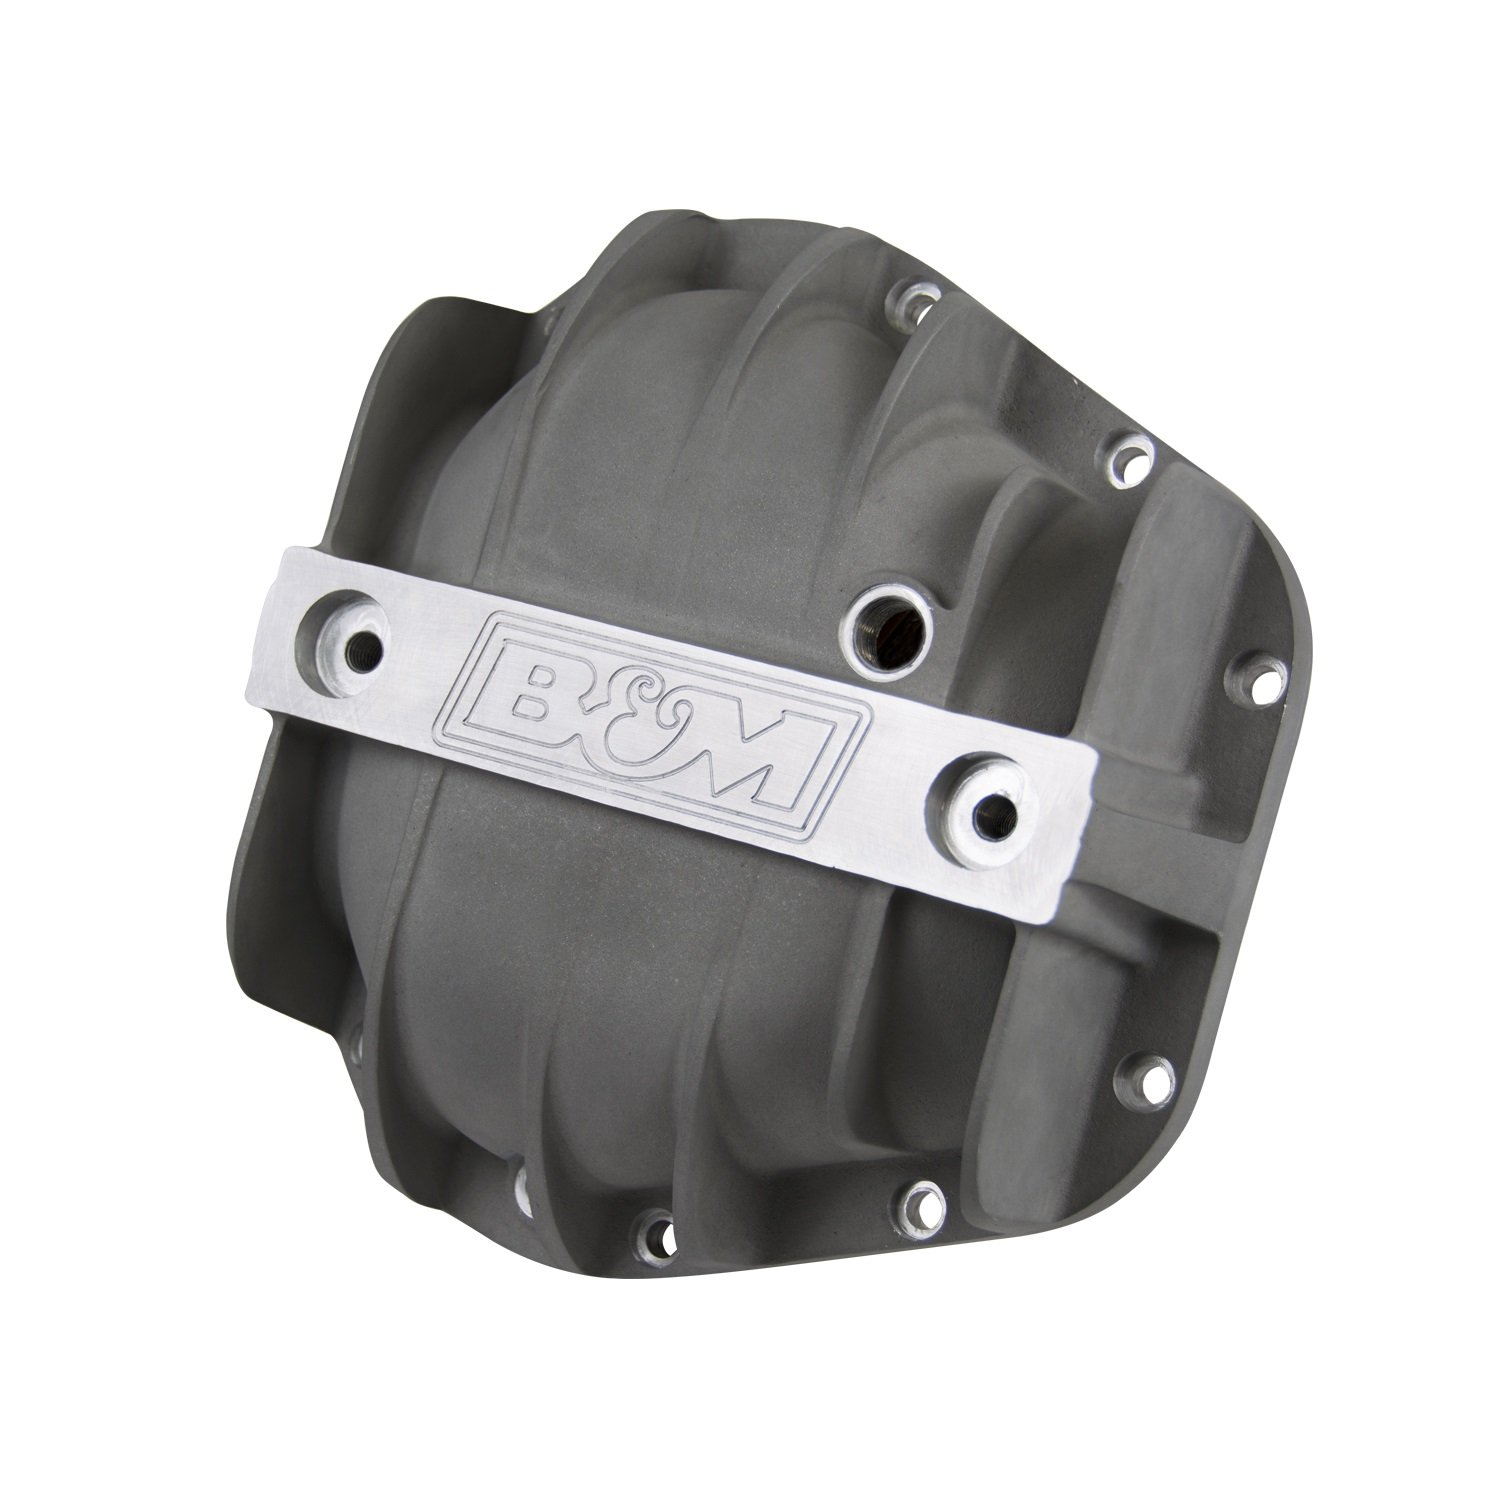 B&M 10314 Differential Cover for Dana 60/70